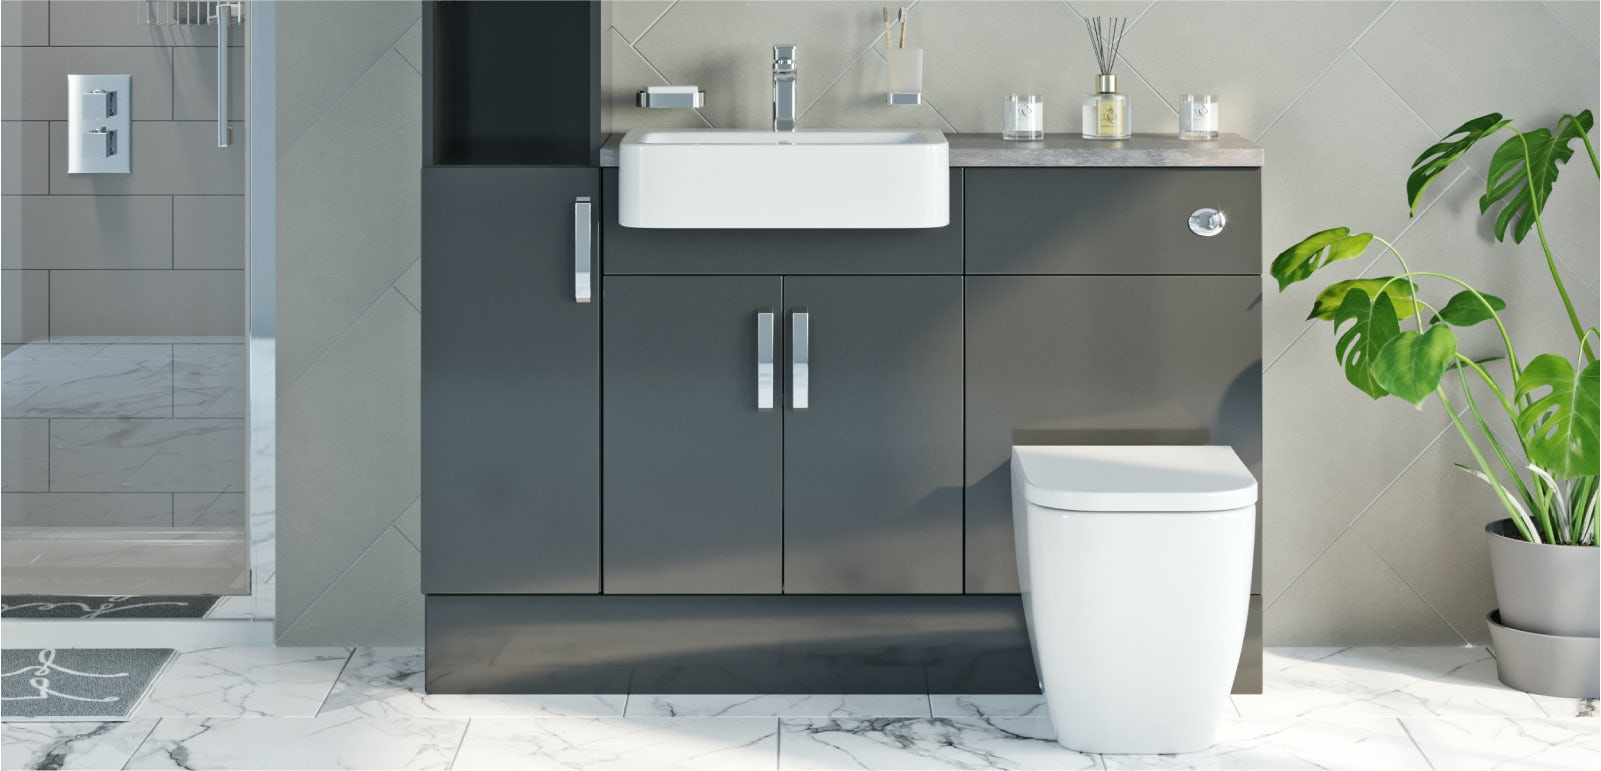 Fitted bathroom furniture buying guide  VictoriaPlum.com